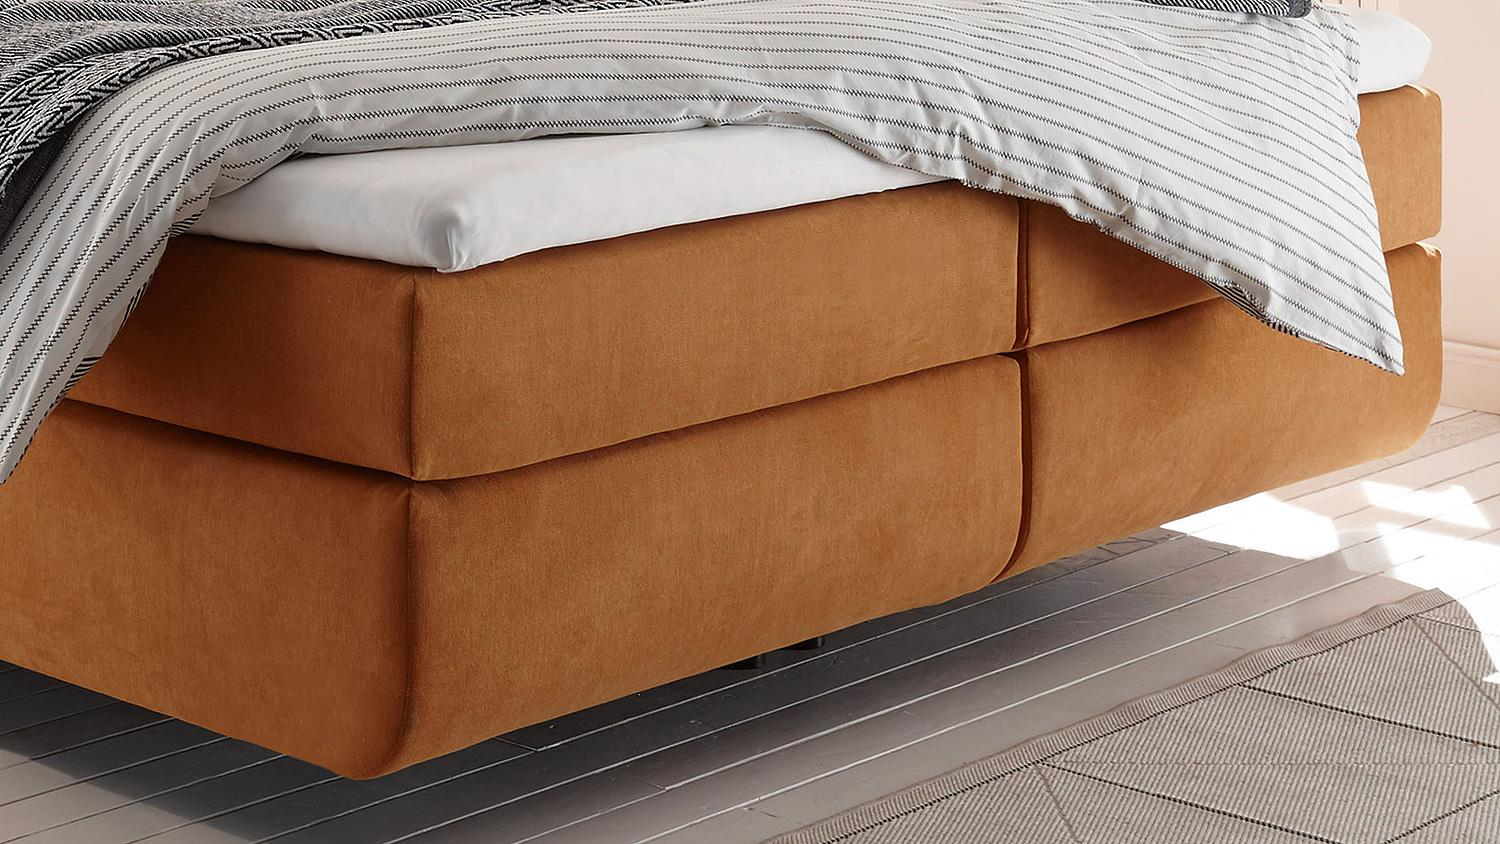 boxspringbett malibus in stoff orange 7 zonen ttk inkl topper 180x200. Black Bedroom Furniture Sets. Home Design Ideas